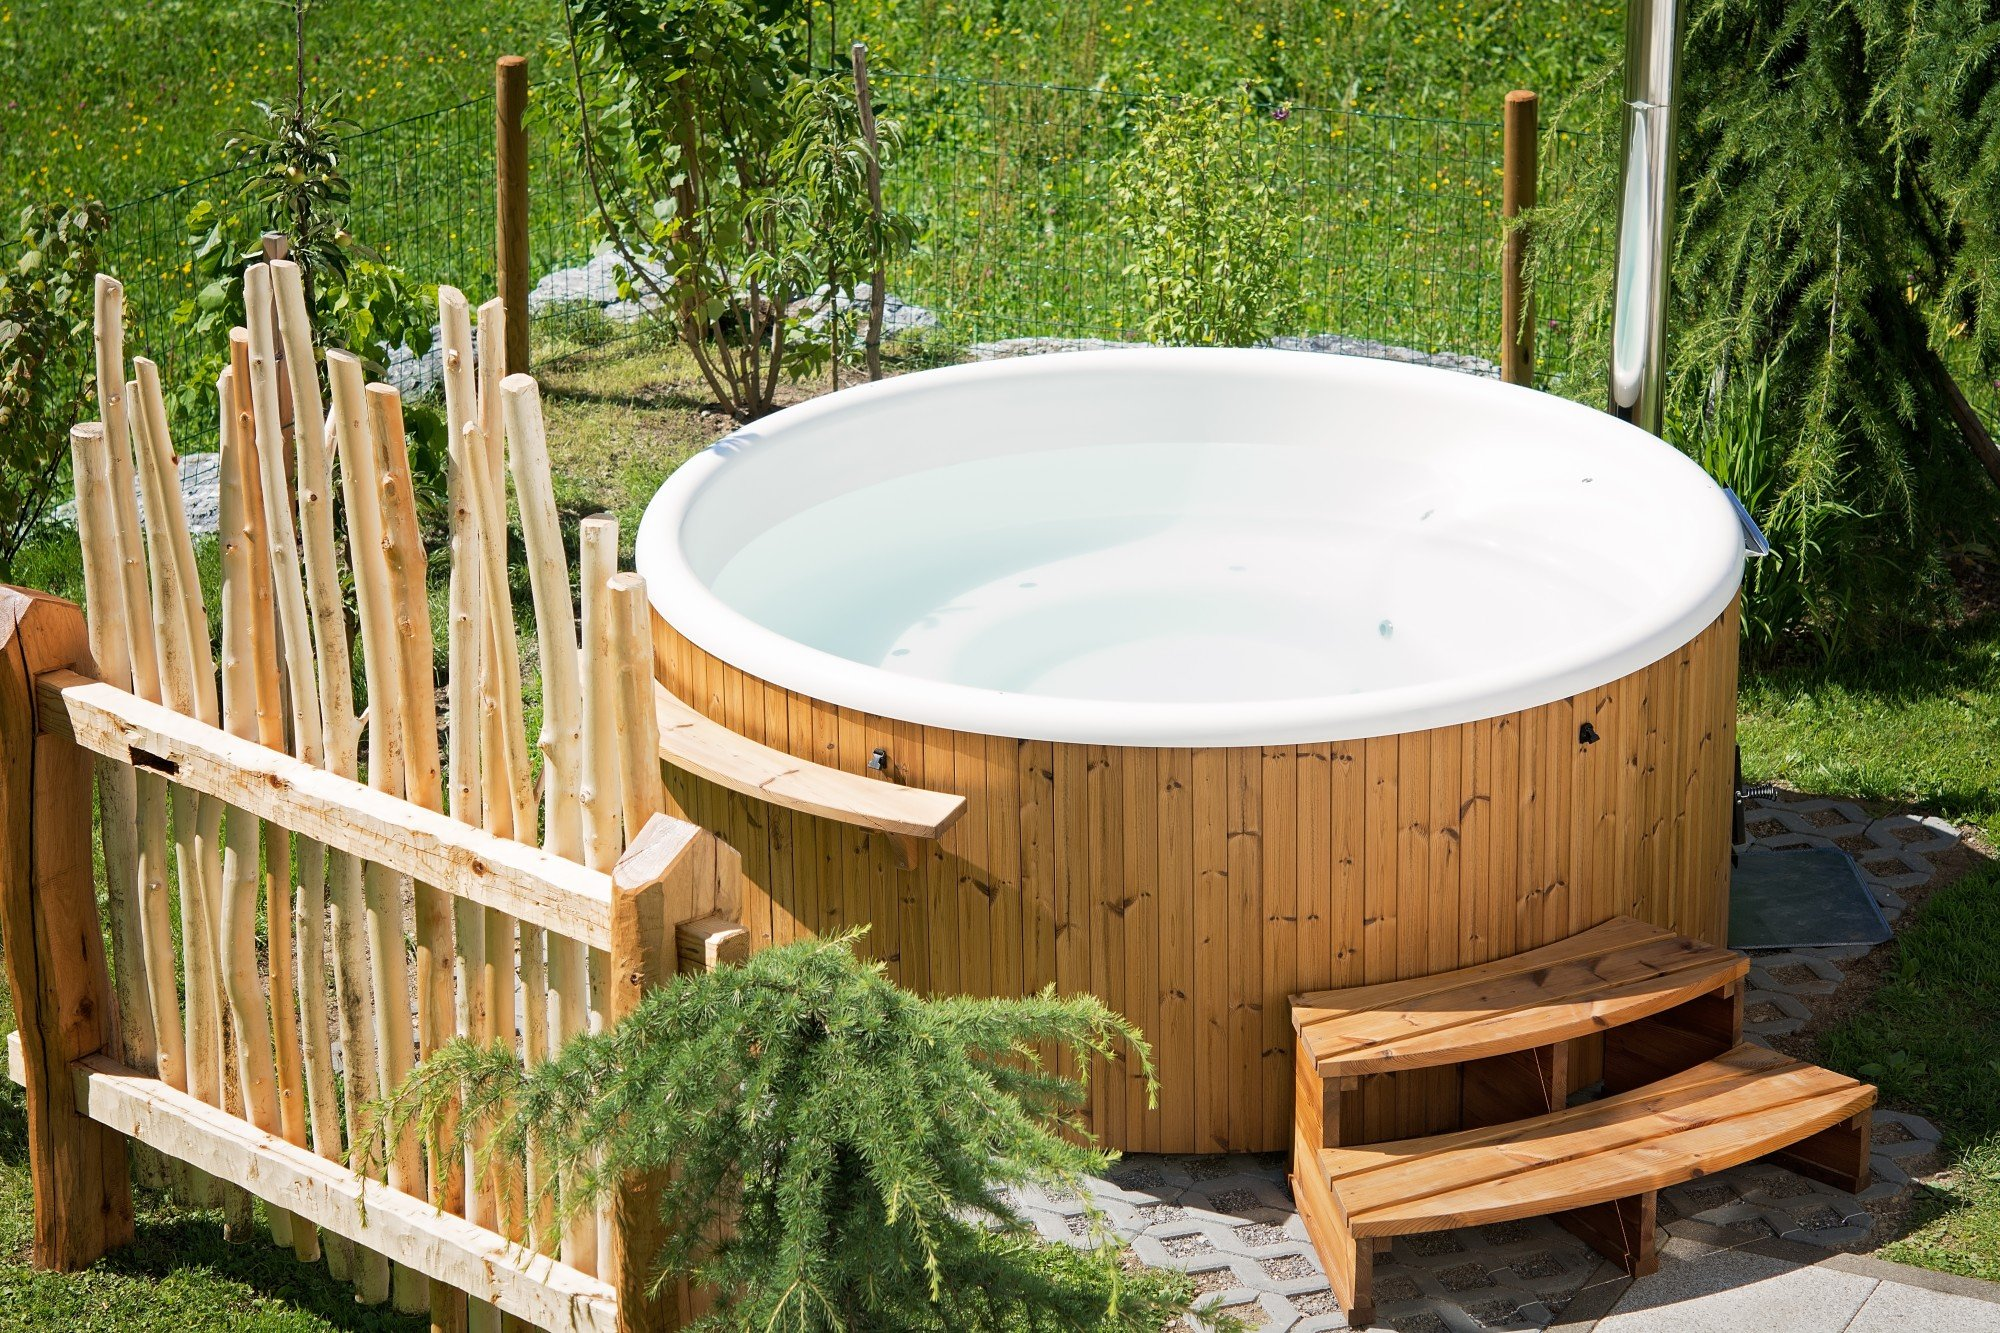 How to Winterize Your Hot Tub Before the Cold Season